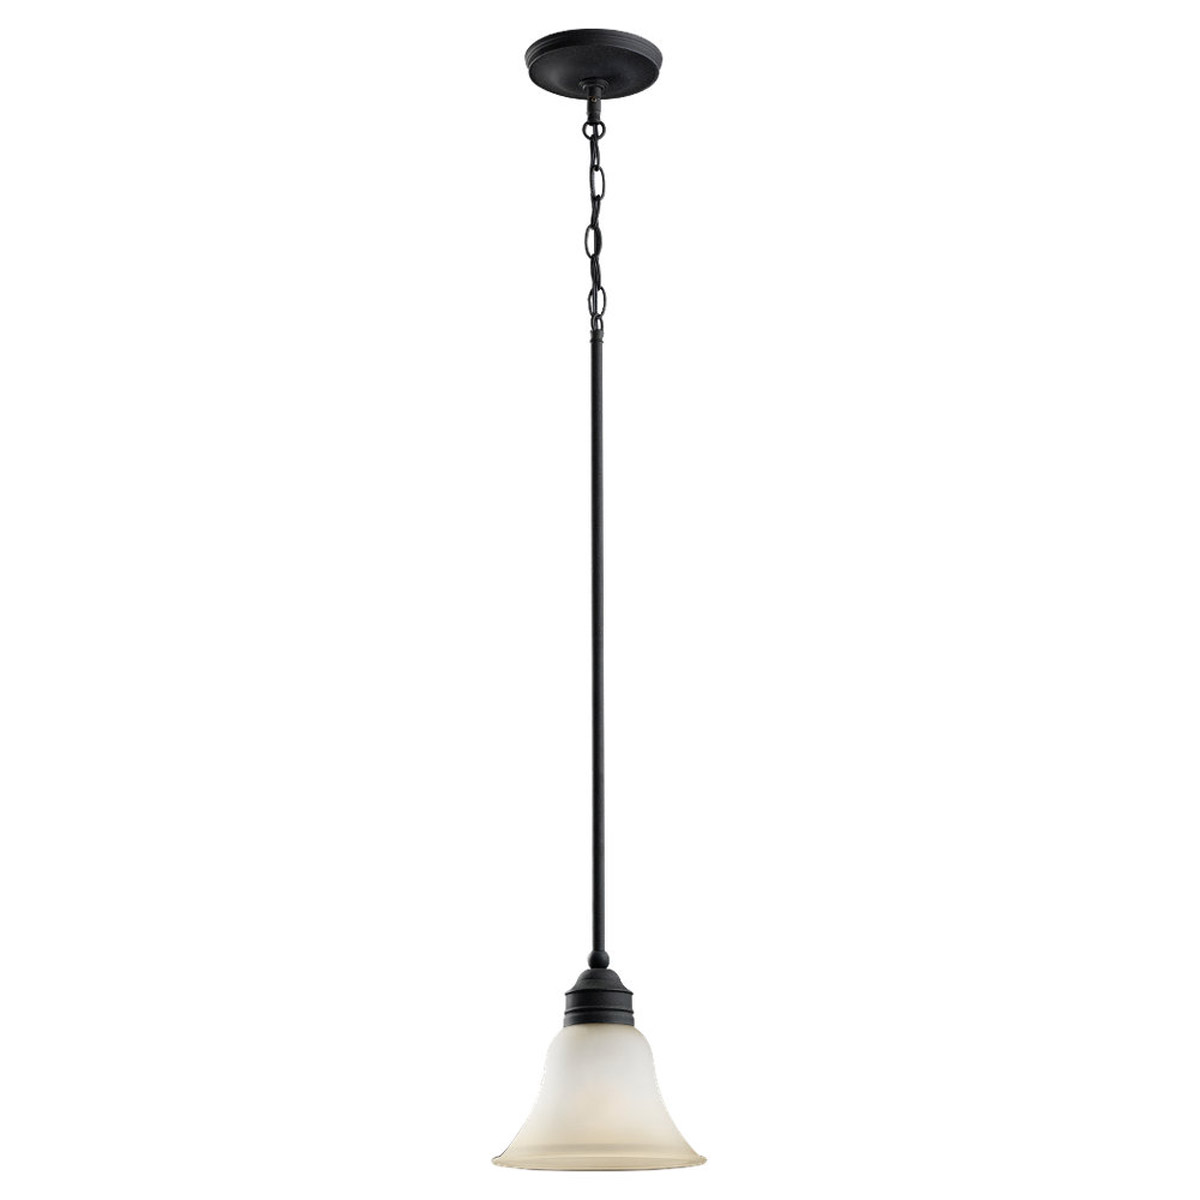 Sea Gull Lighting Gladstone 1 Light Fluorescent Pendant in Forged Iron 61850BLE-185